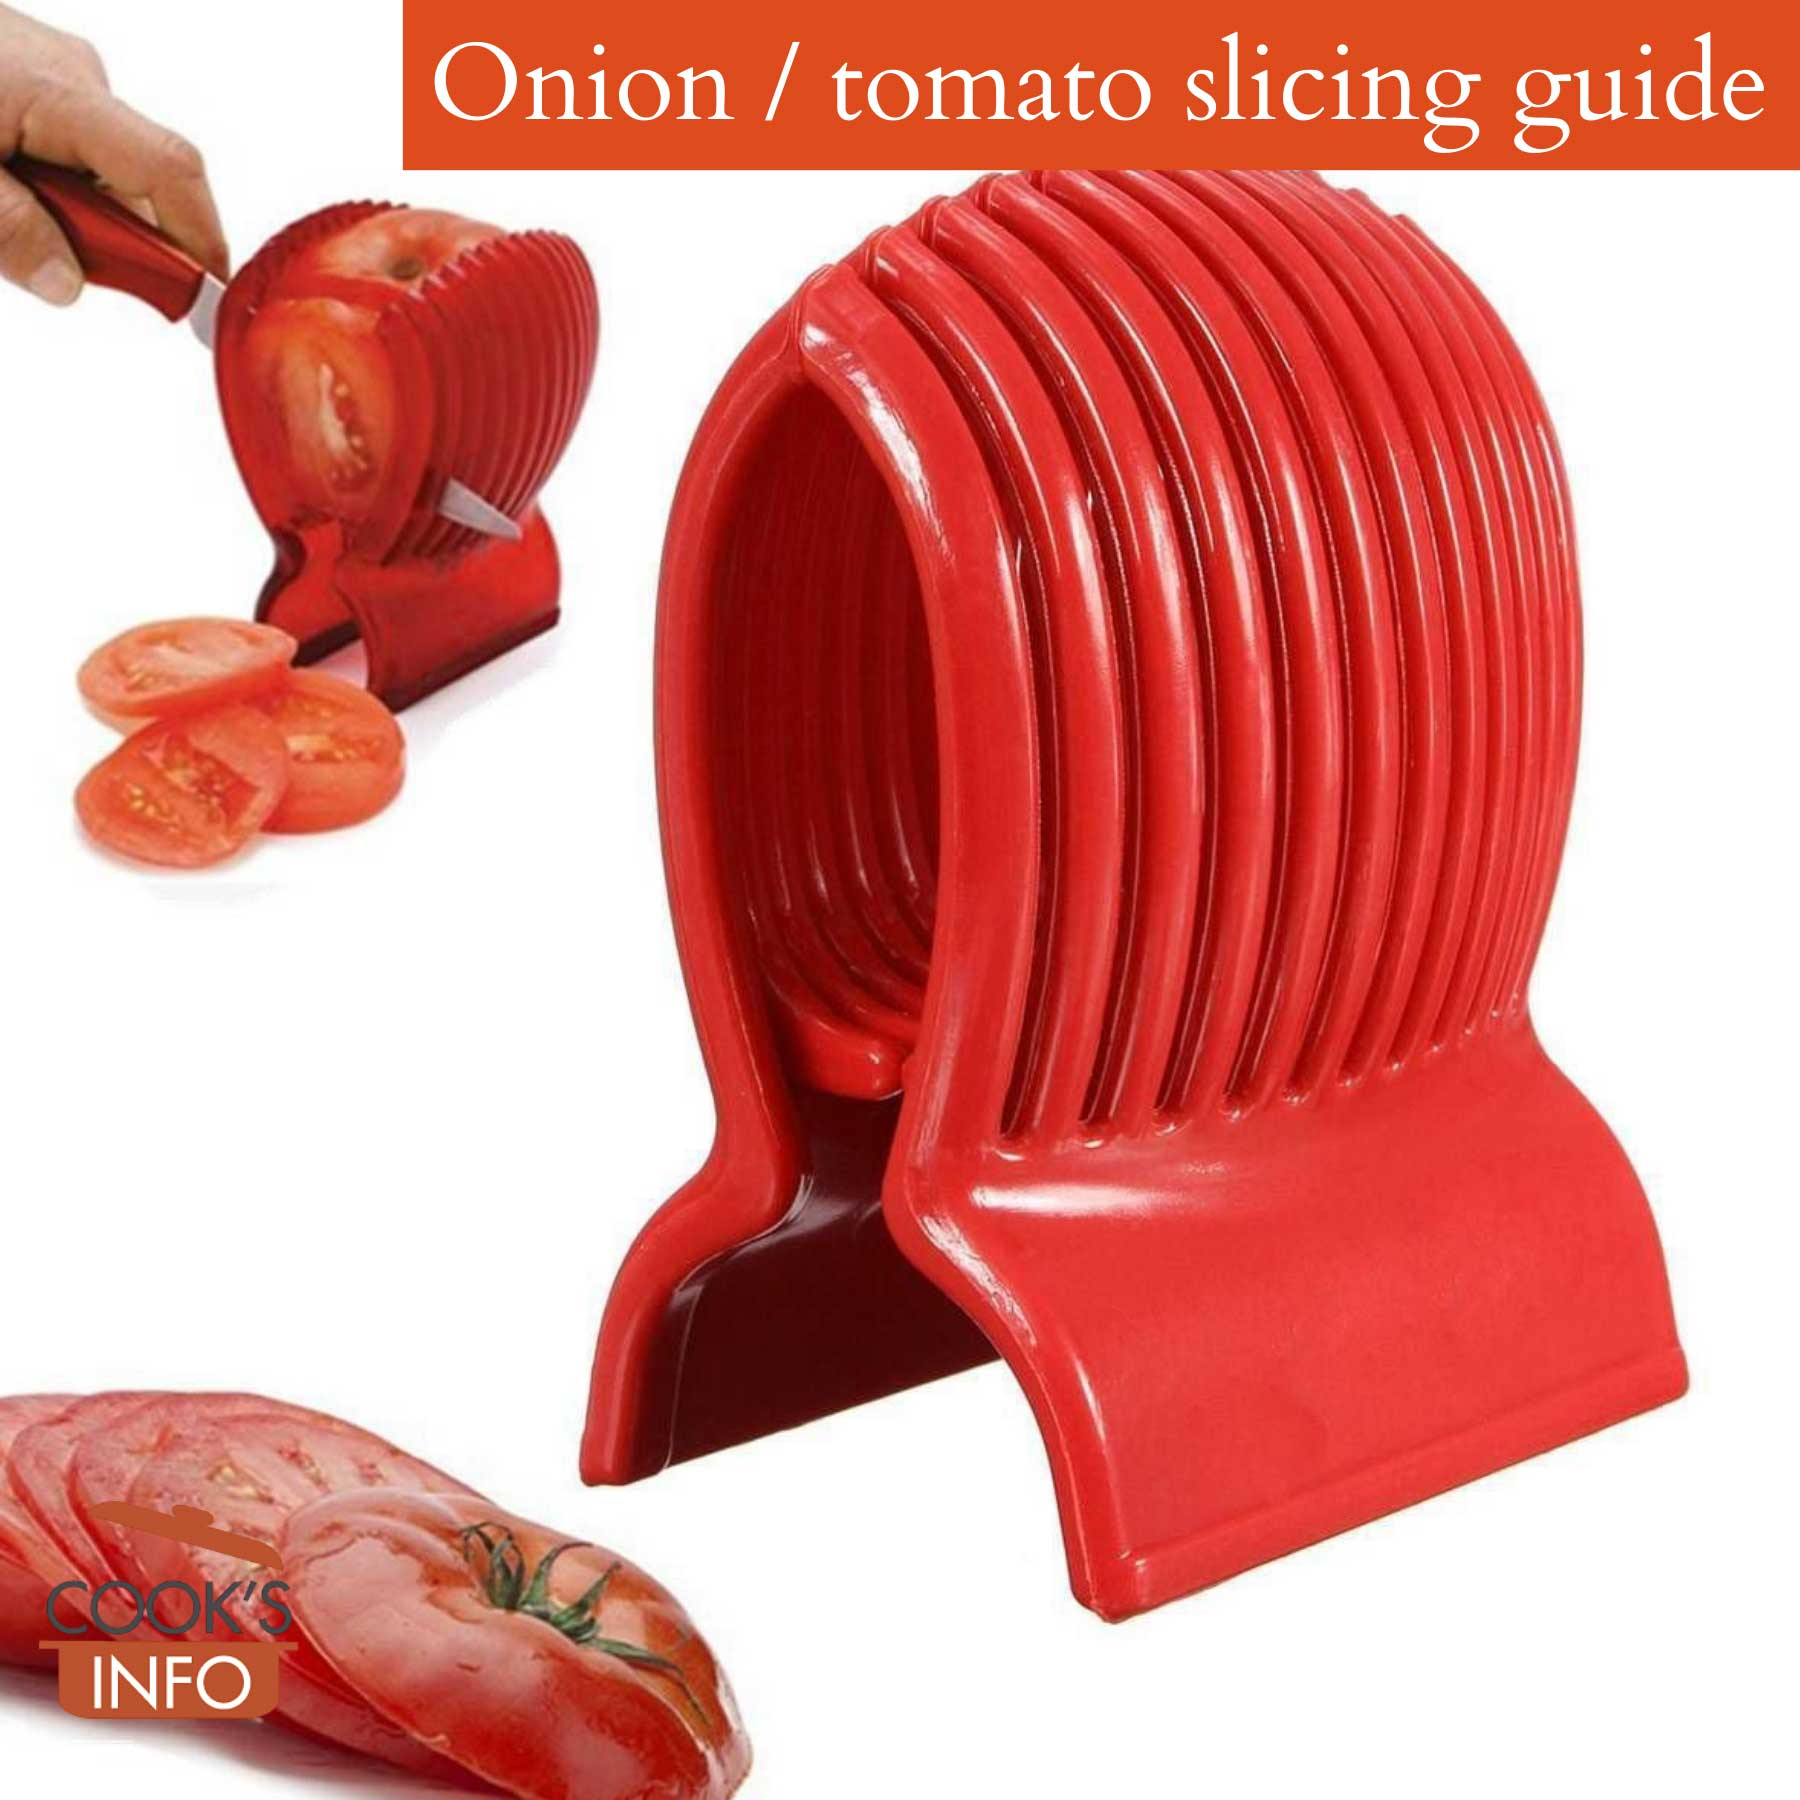 Onion / tomato slicing guide